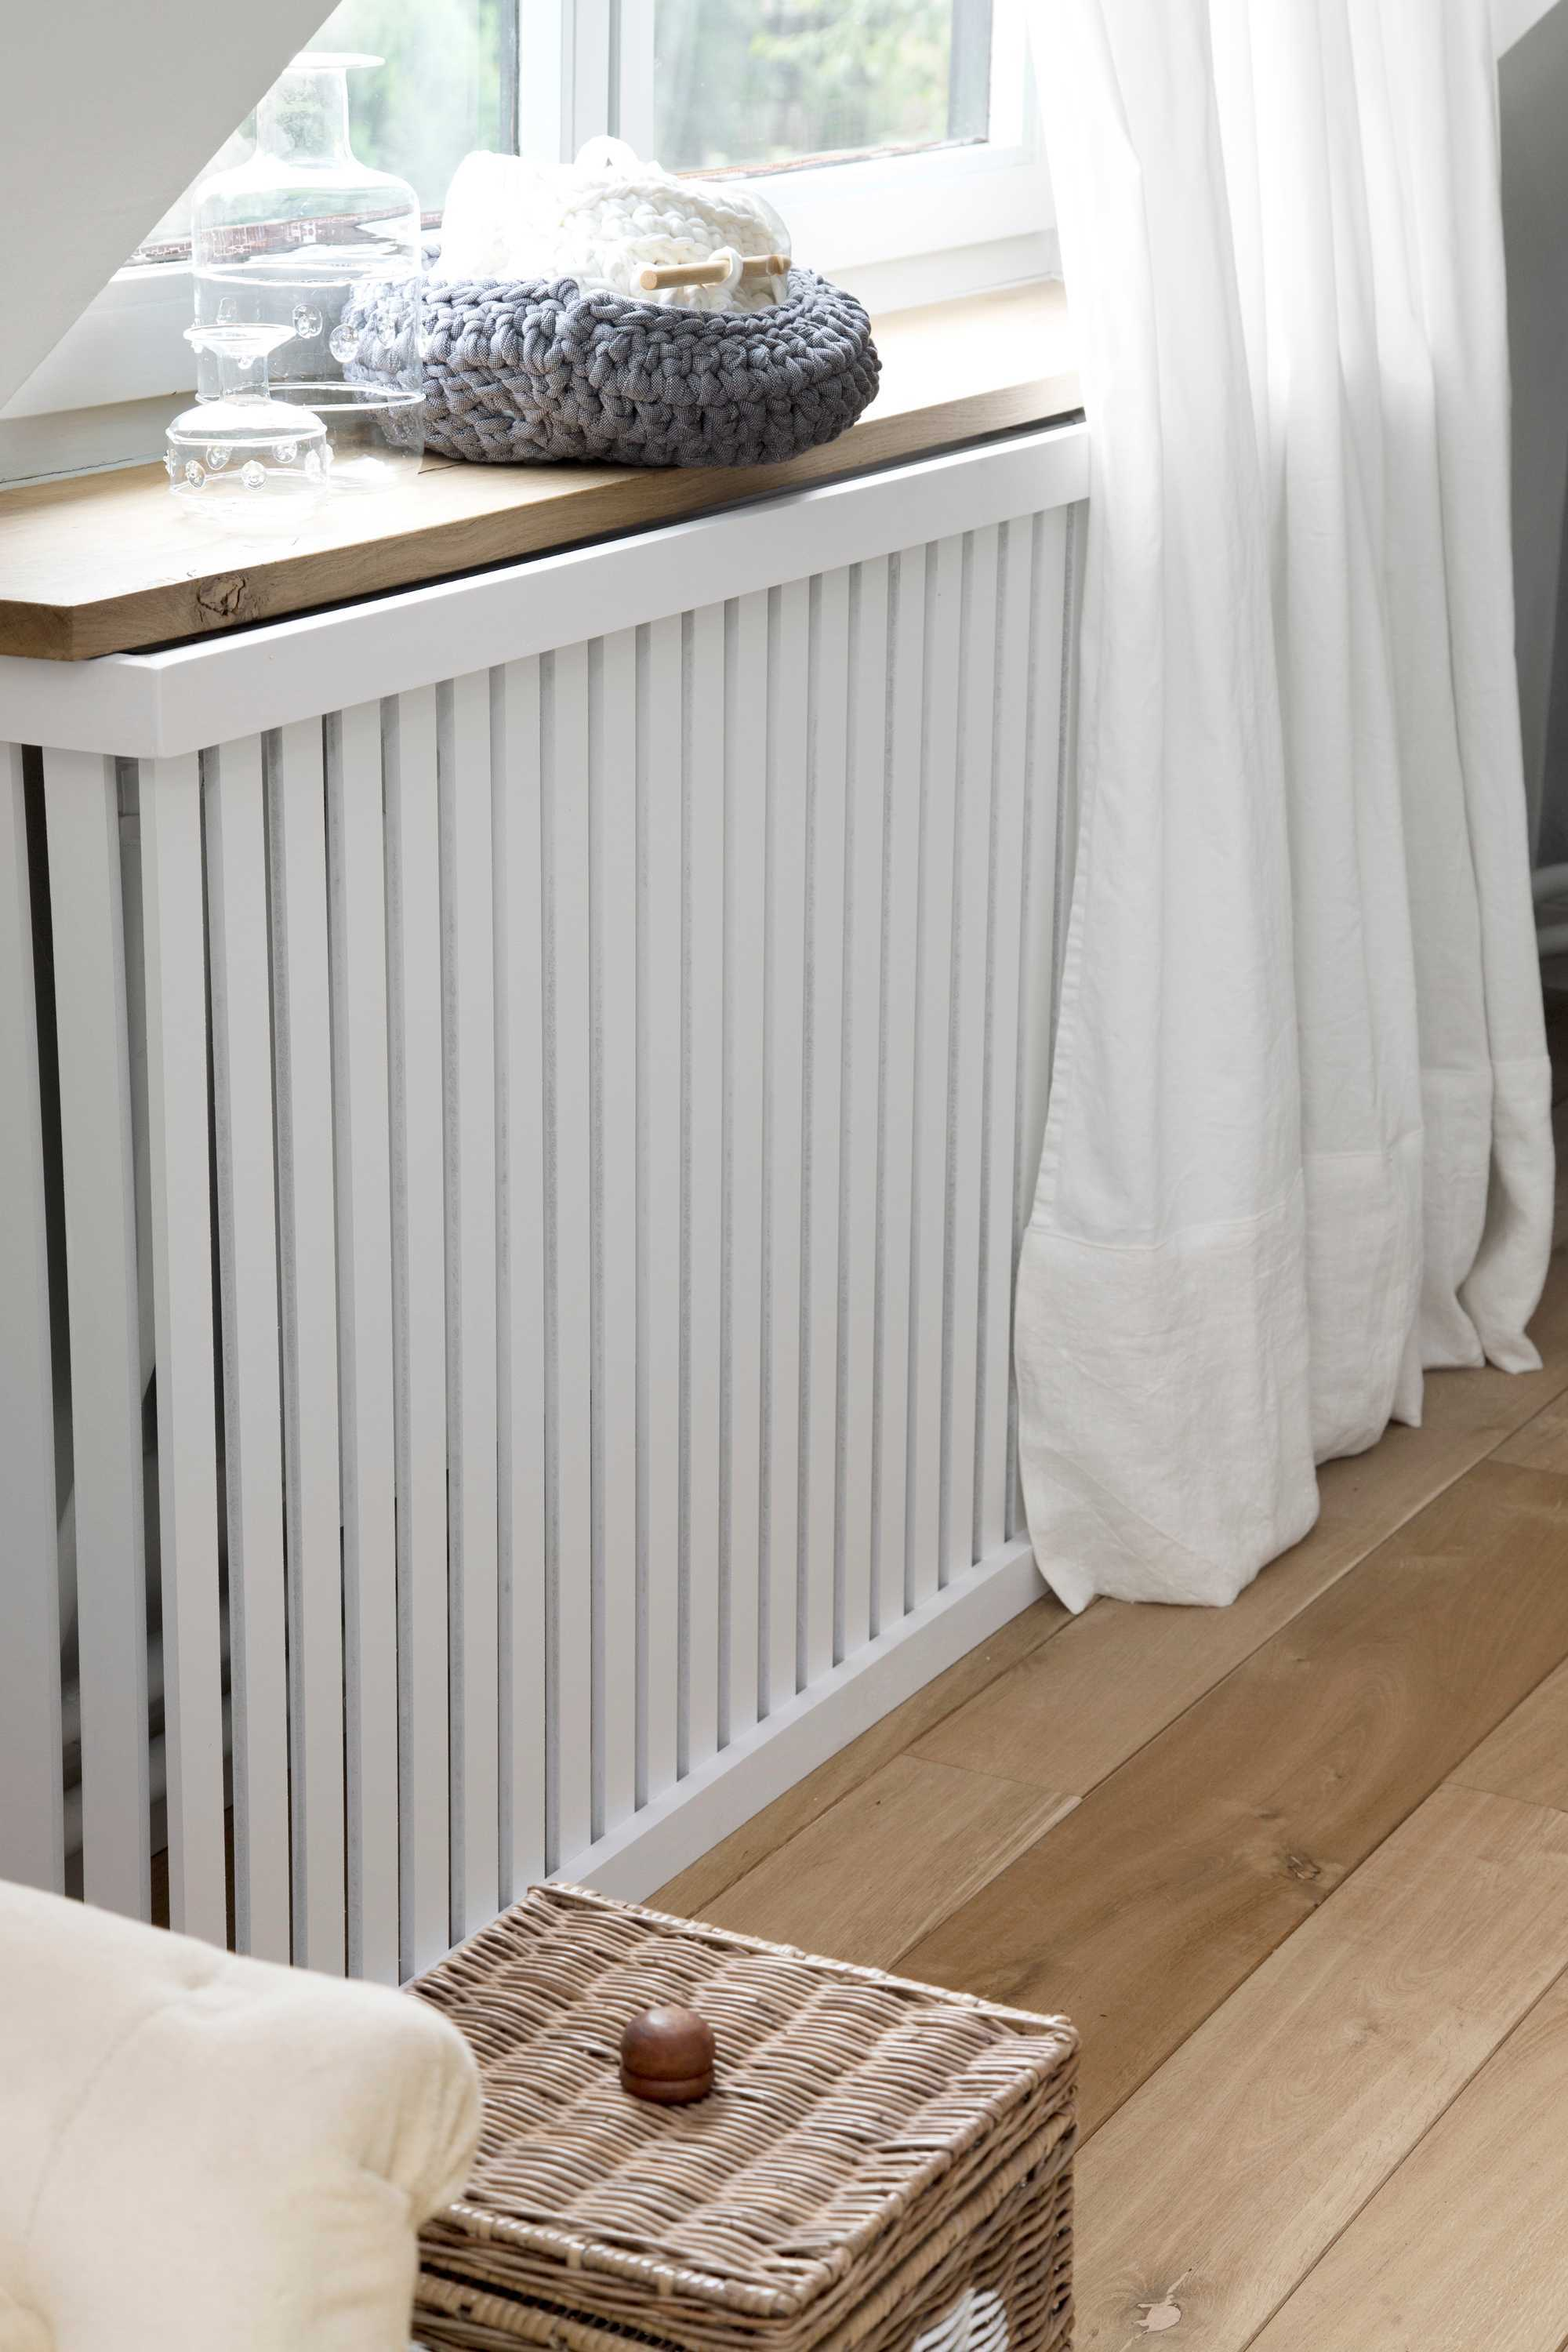 DIY radiatorkast